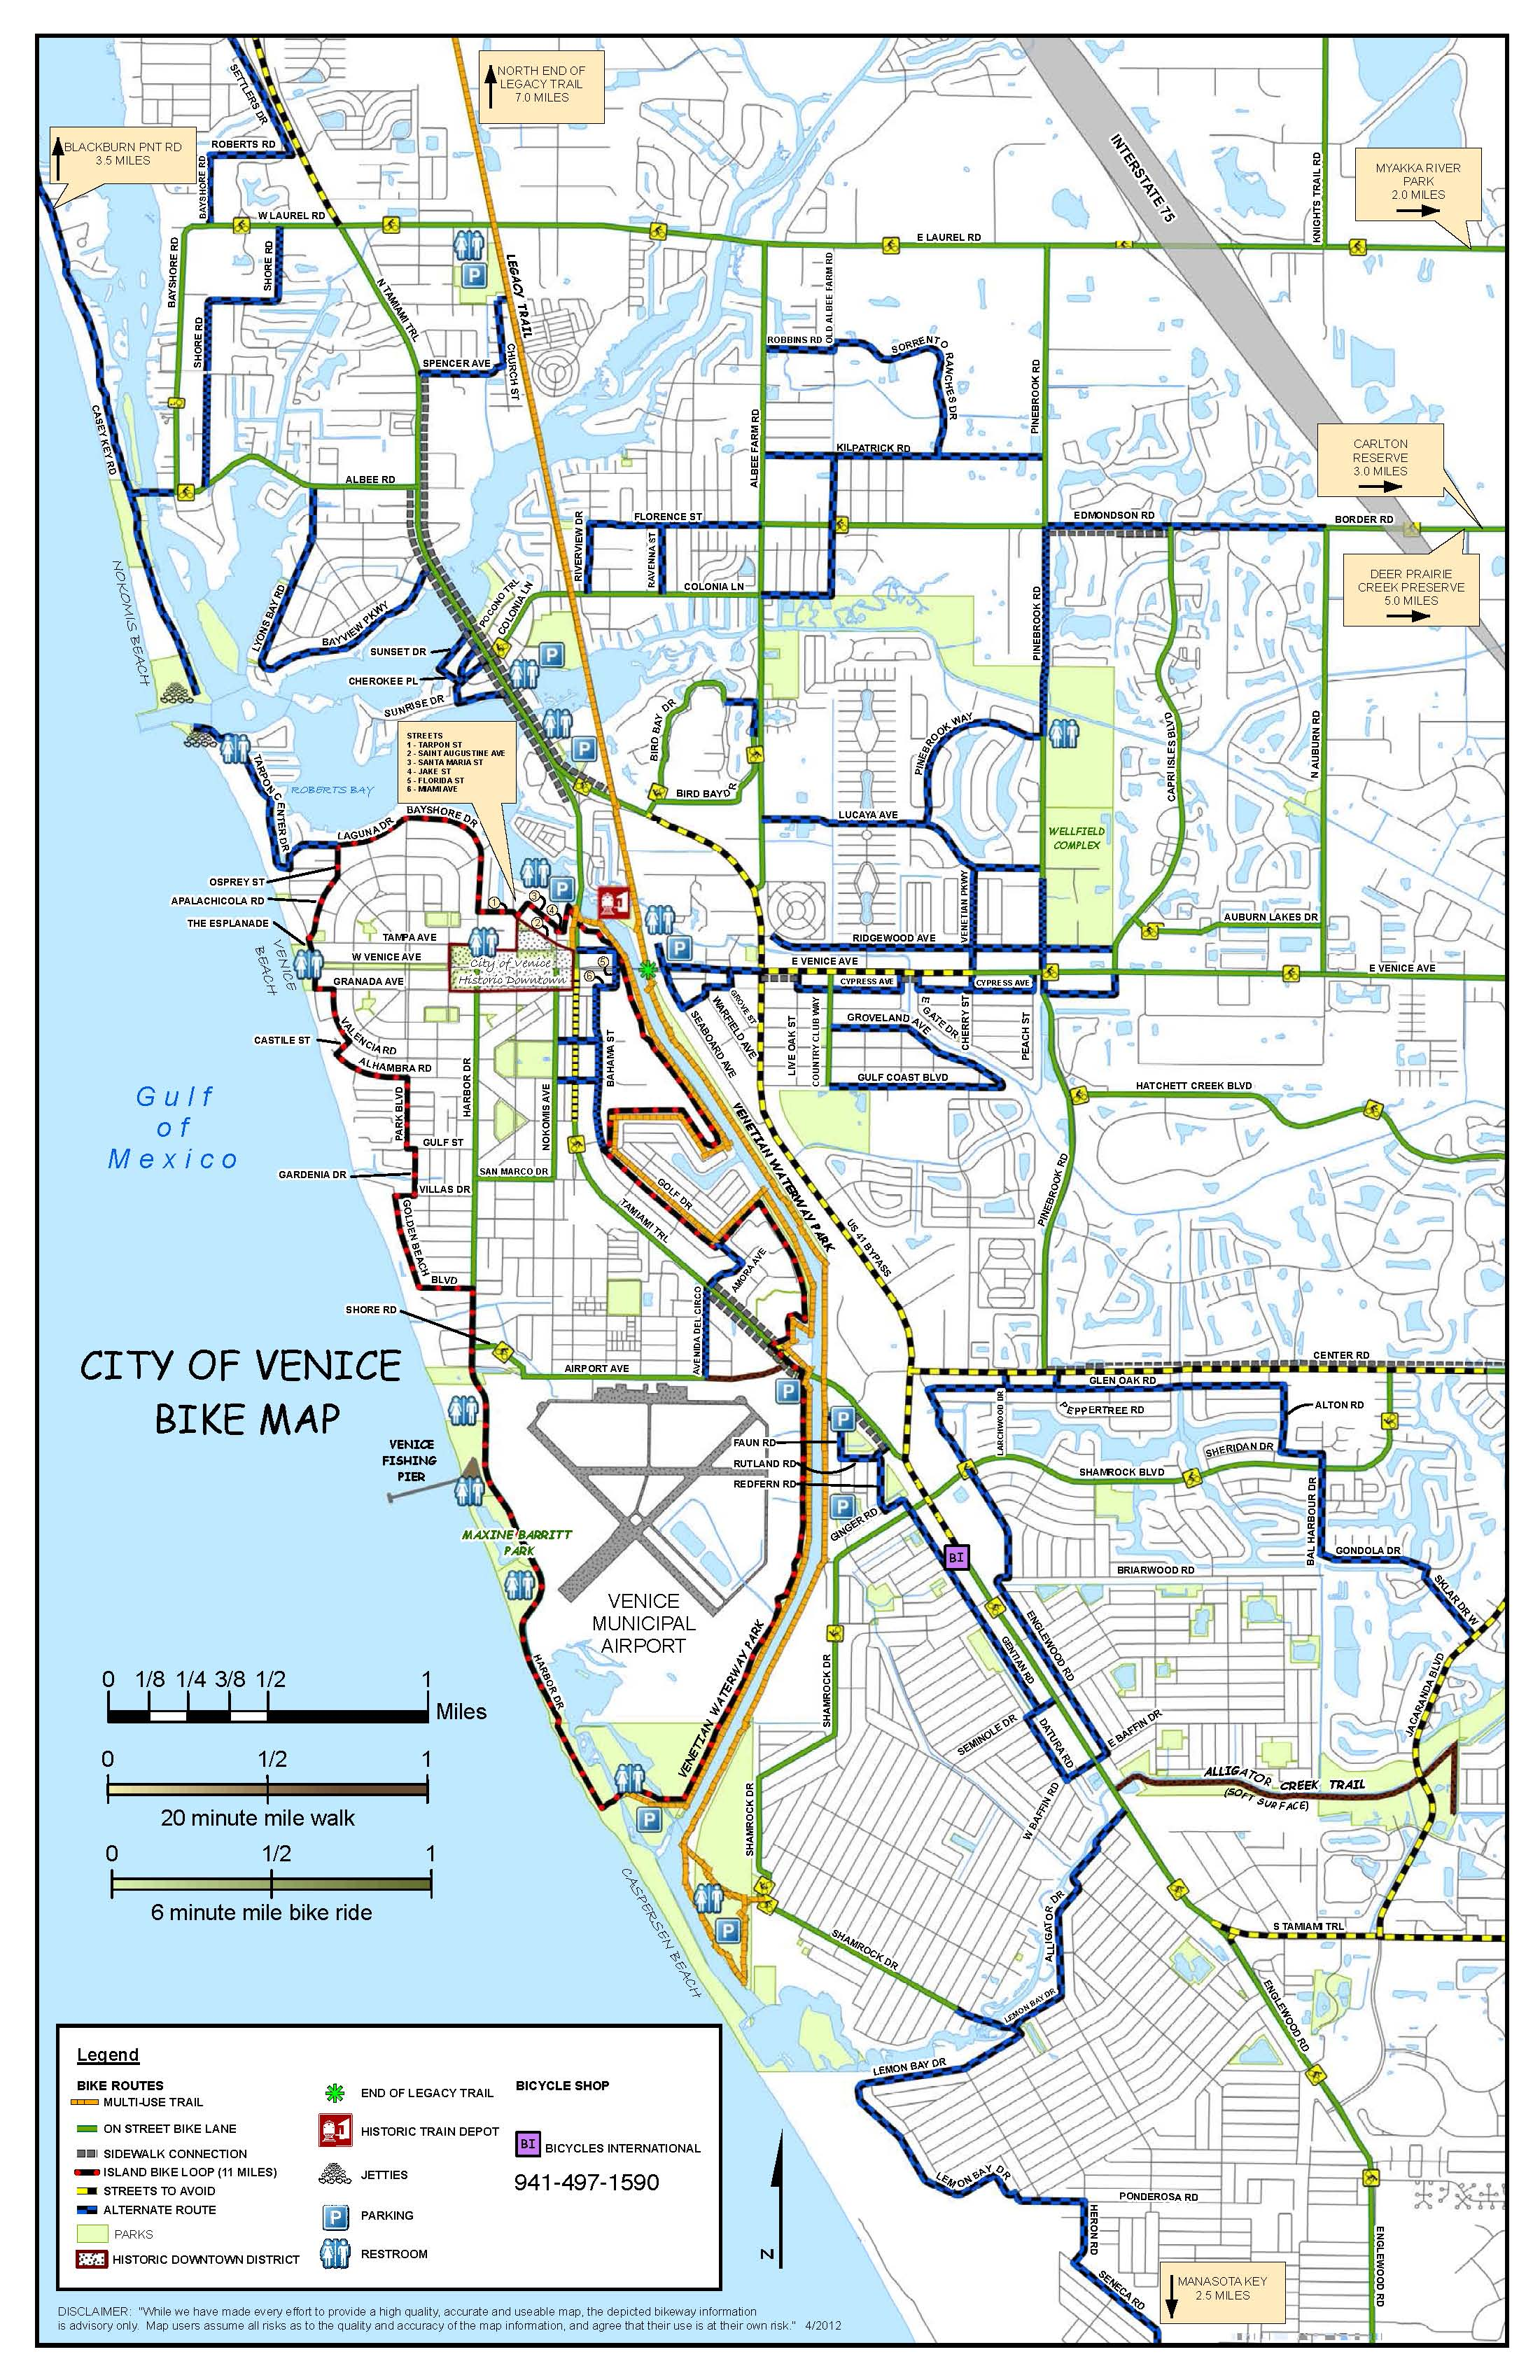 Map Of Venice Florida.Bicycles International Bike Sales Repair Venice Florida